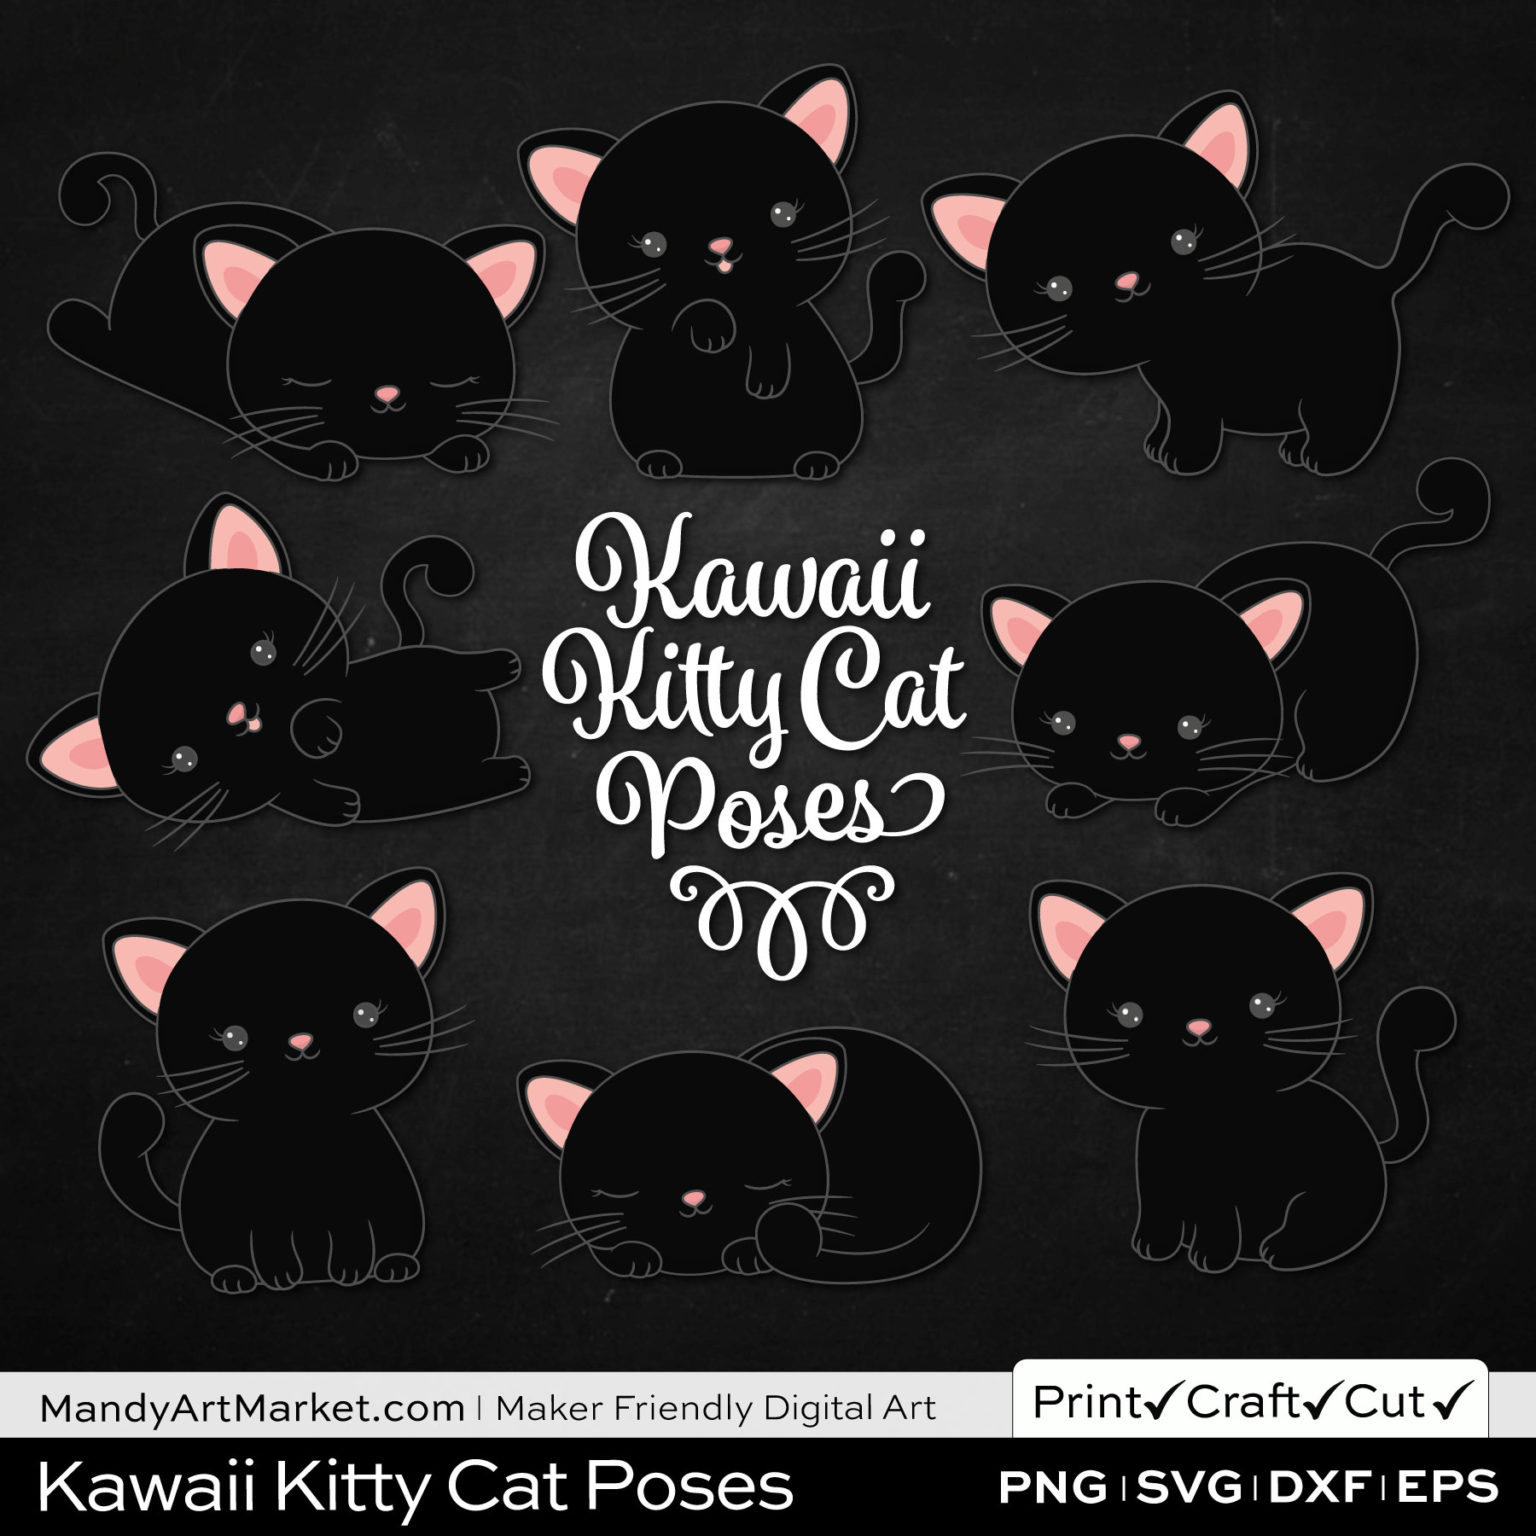 Ink Black Kawaii Kitty Cat Poses Clipart on Black Background